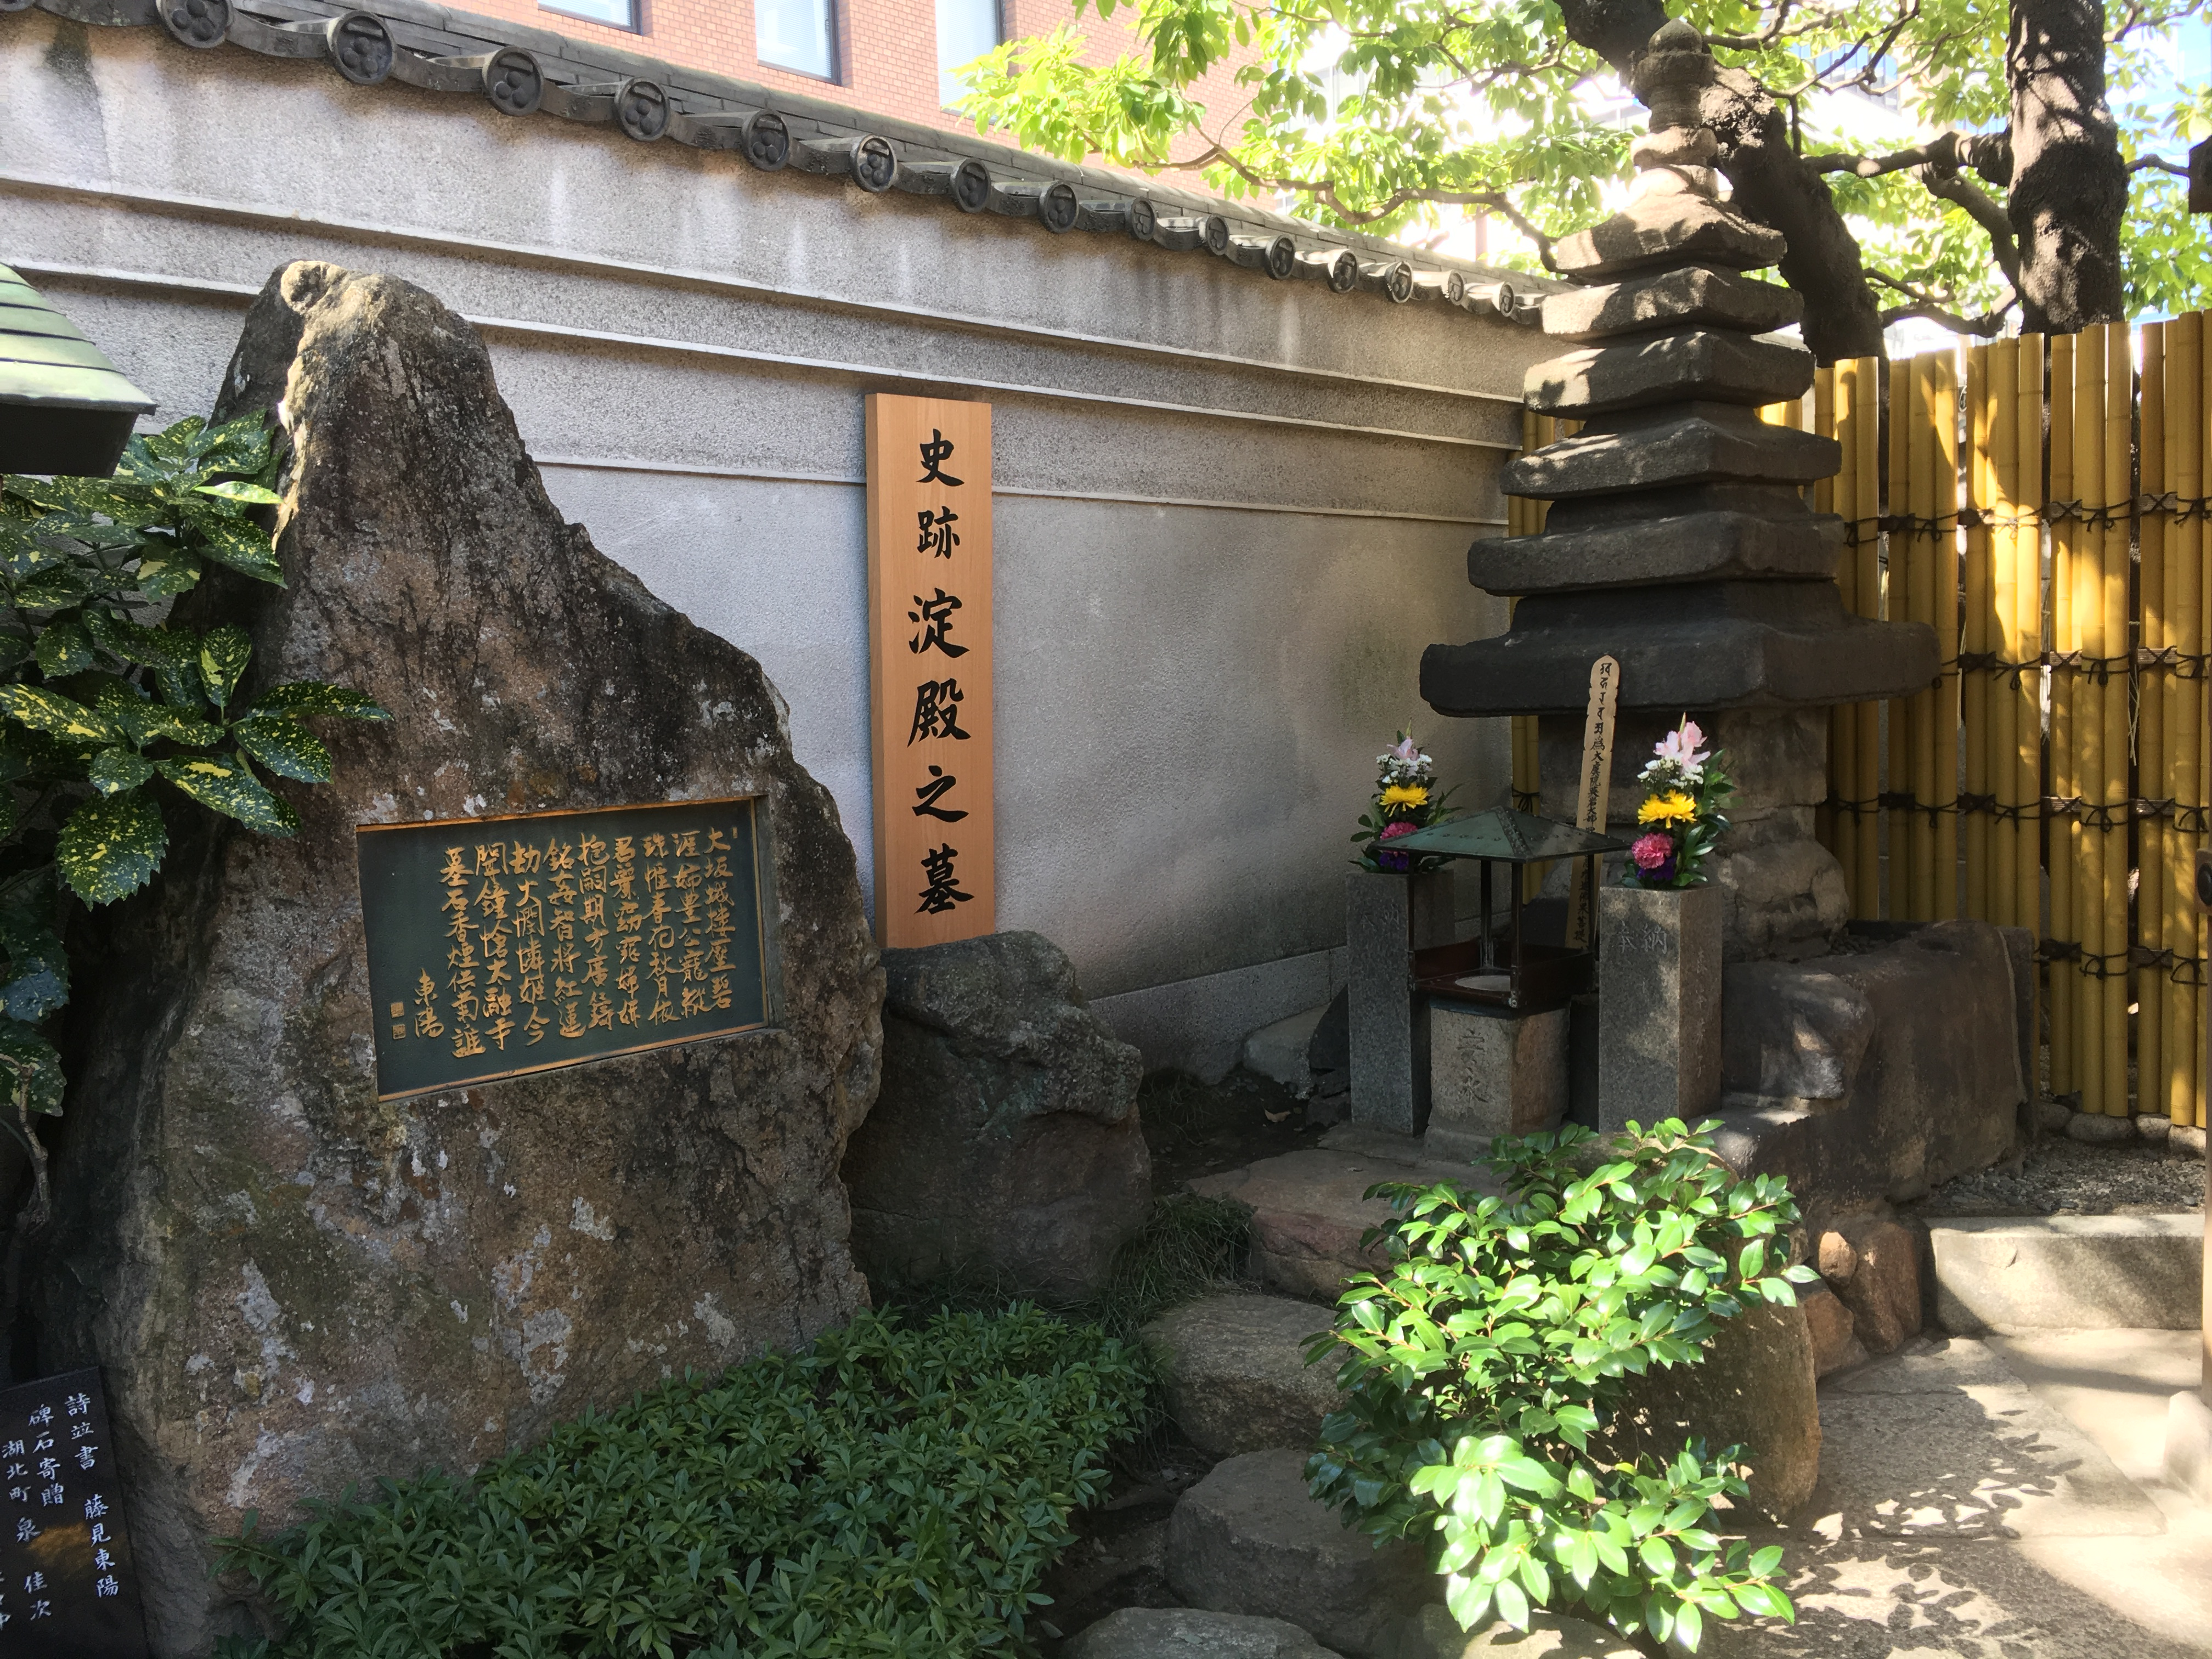 Grave of Hideyoshi's second wife Yodo-dono